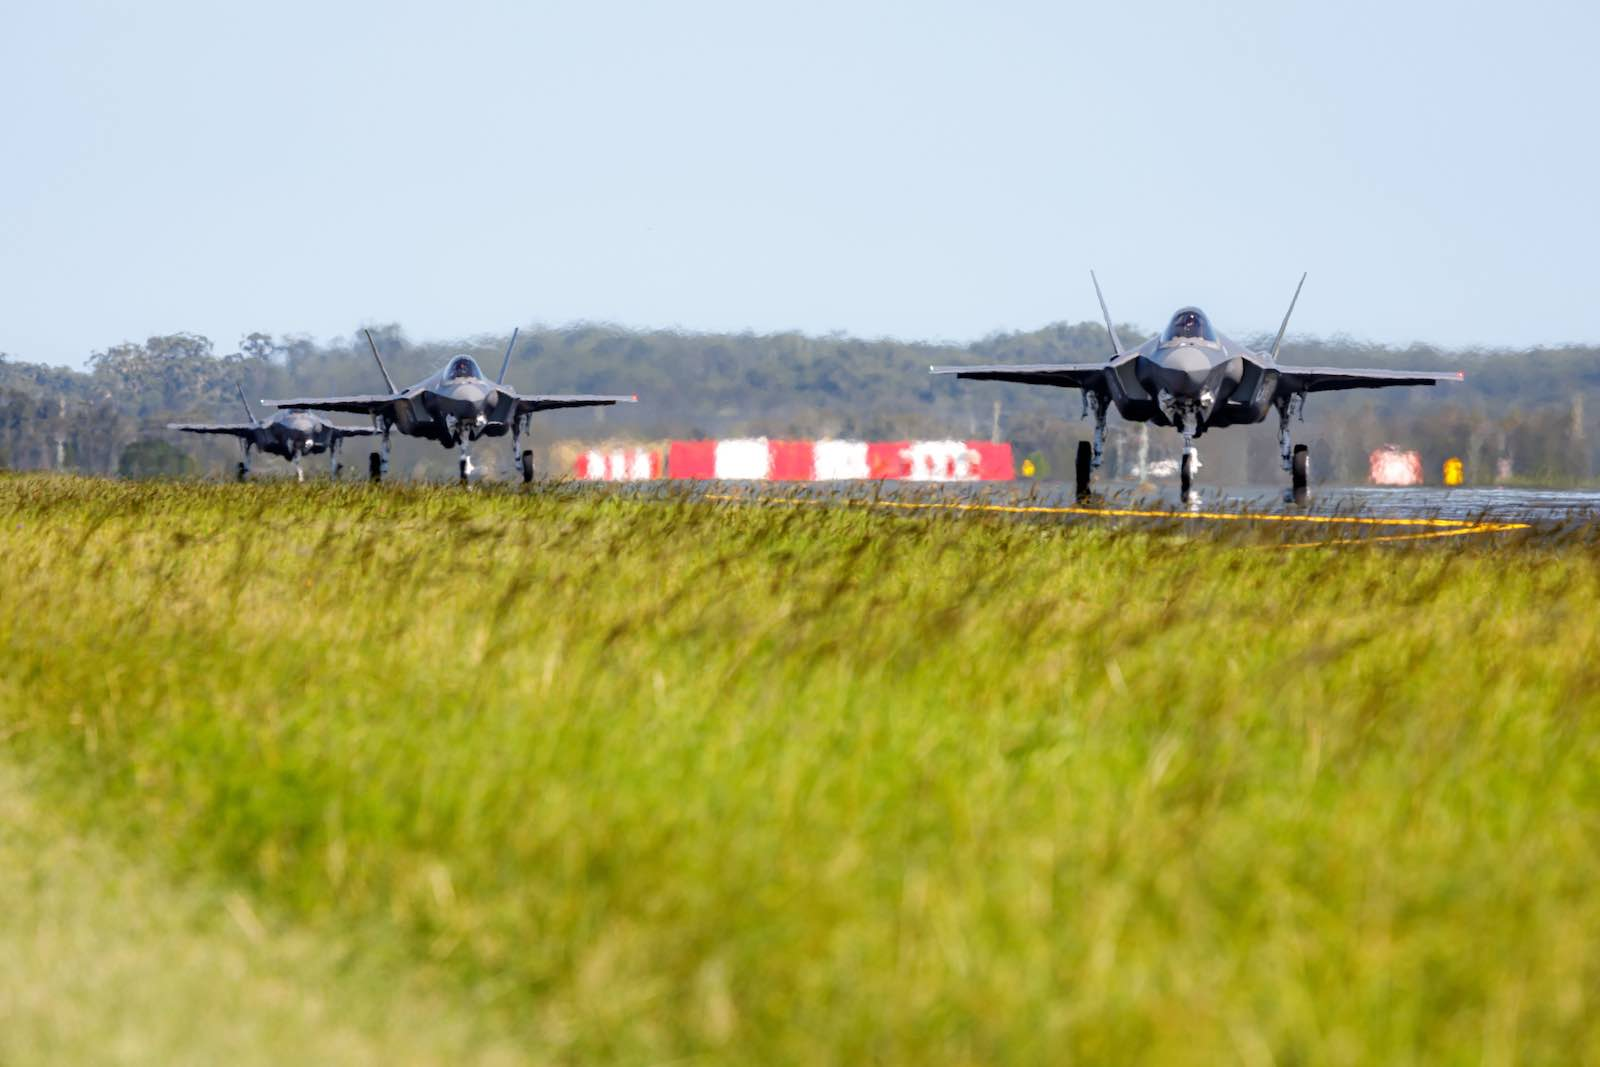 F-35A Lightning II aircraft at RAAF Base Williamtown, February 2021 (Department of Defence)